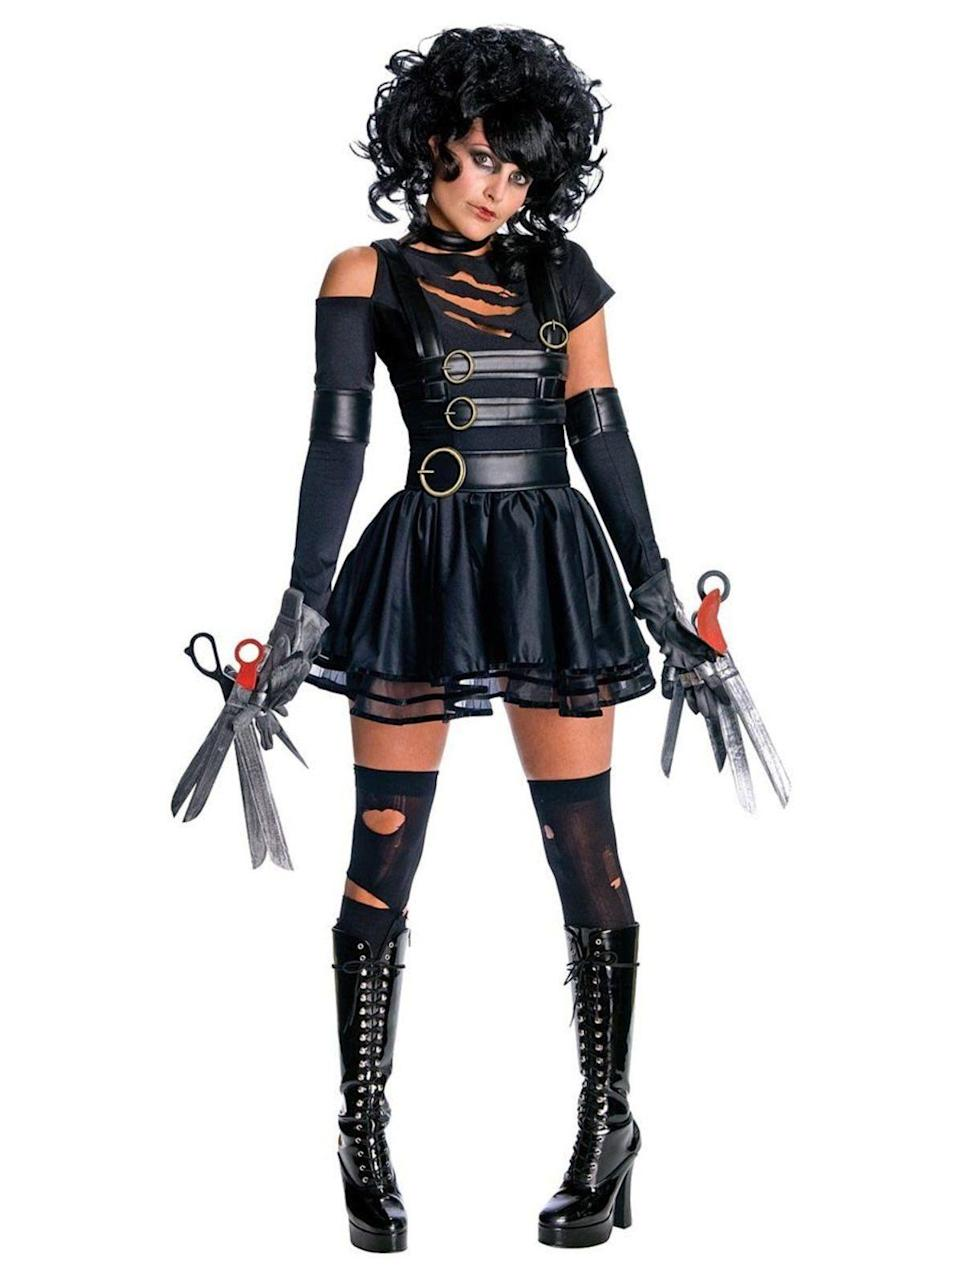 "<p><strong>Costume Supercenter</strong></p><p>costumesupercenter.com</p><p><strong>$5.99</strong></p><p><a href=""https://www.costumesupercenter.com/products/sexy-womens-miss-edward-scissorhands-costume"" rel=""nofollow noopener"" target=""_blank"" data-ylk=""slk:SHOP NOW"" class=""link rapid-noclick-resp"">SHOP NOW</a></p><p>These thigh-highs are a more accurate representation of how stockings would look if your fingers were made of sharp objects.</p>"